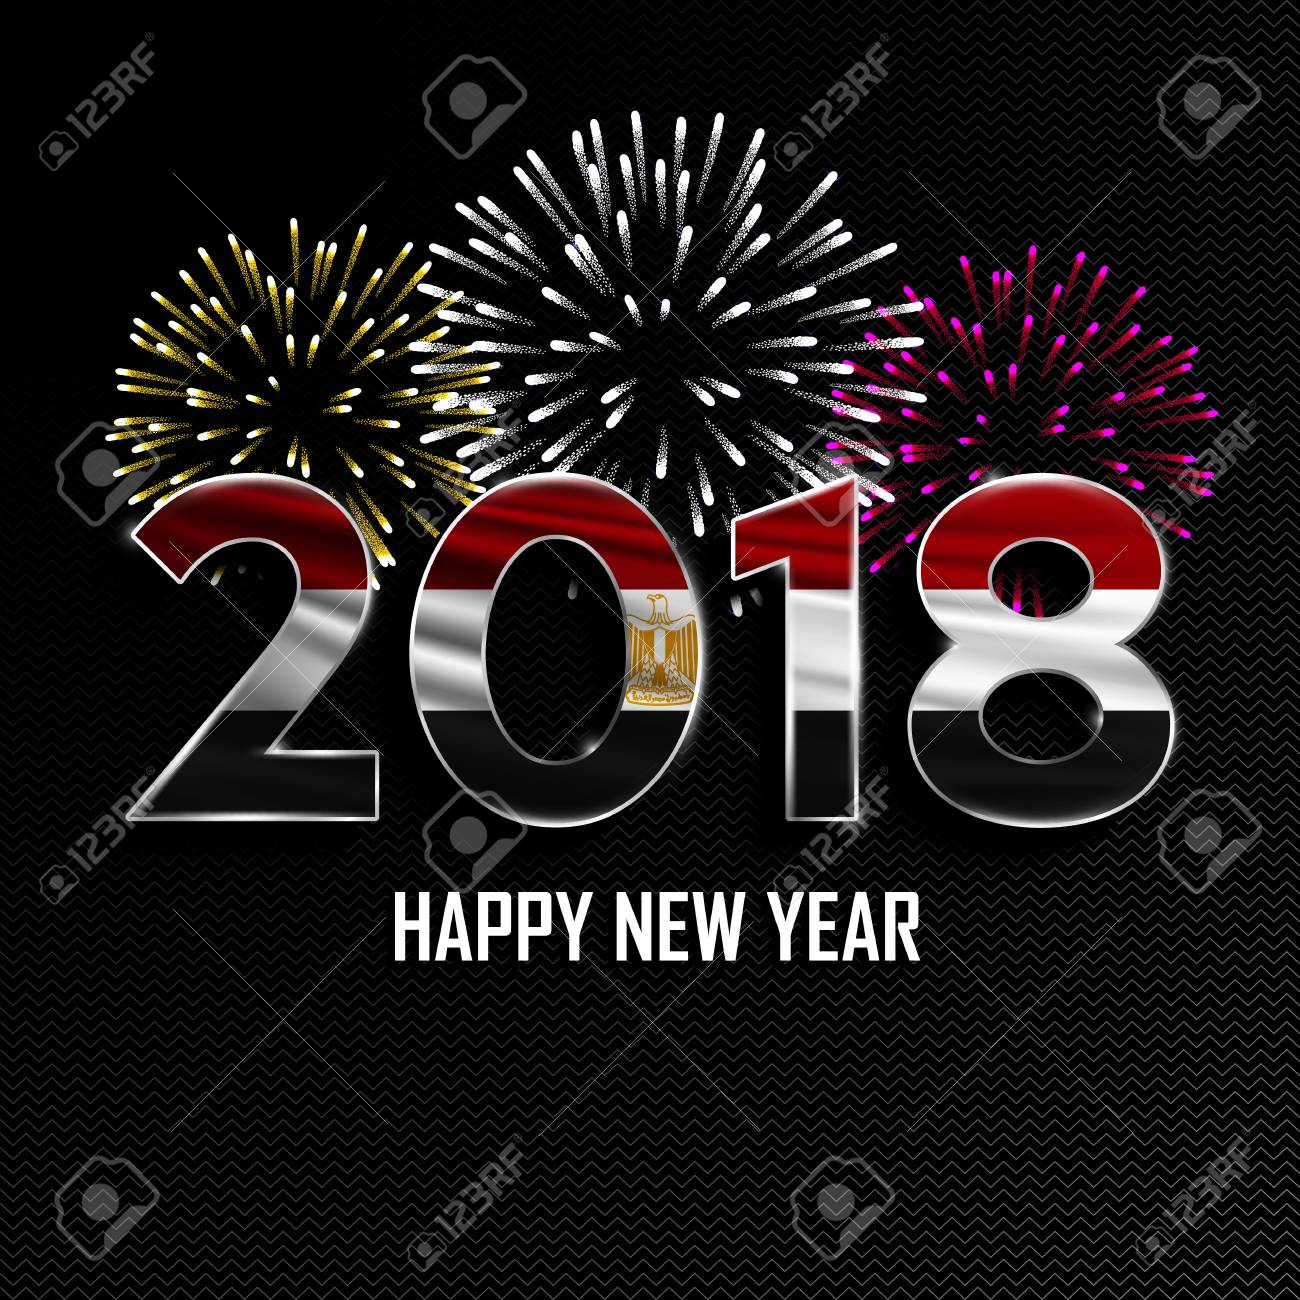 happy new year and merry christmas 2018 new year background with national flag of egypt